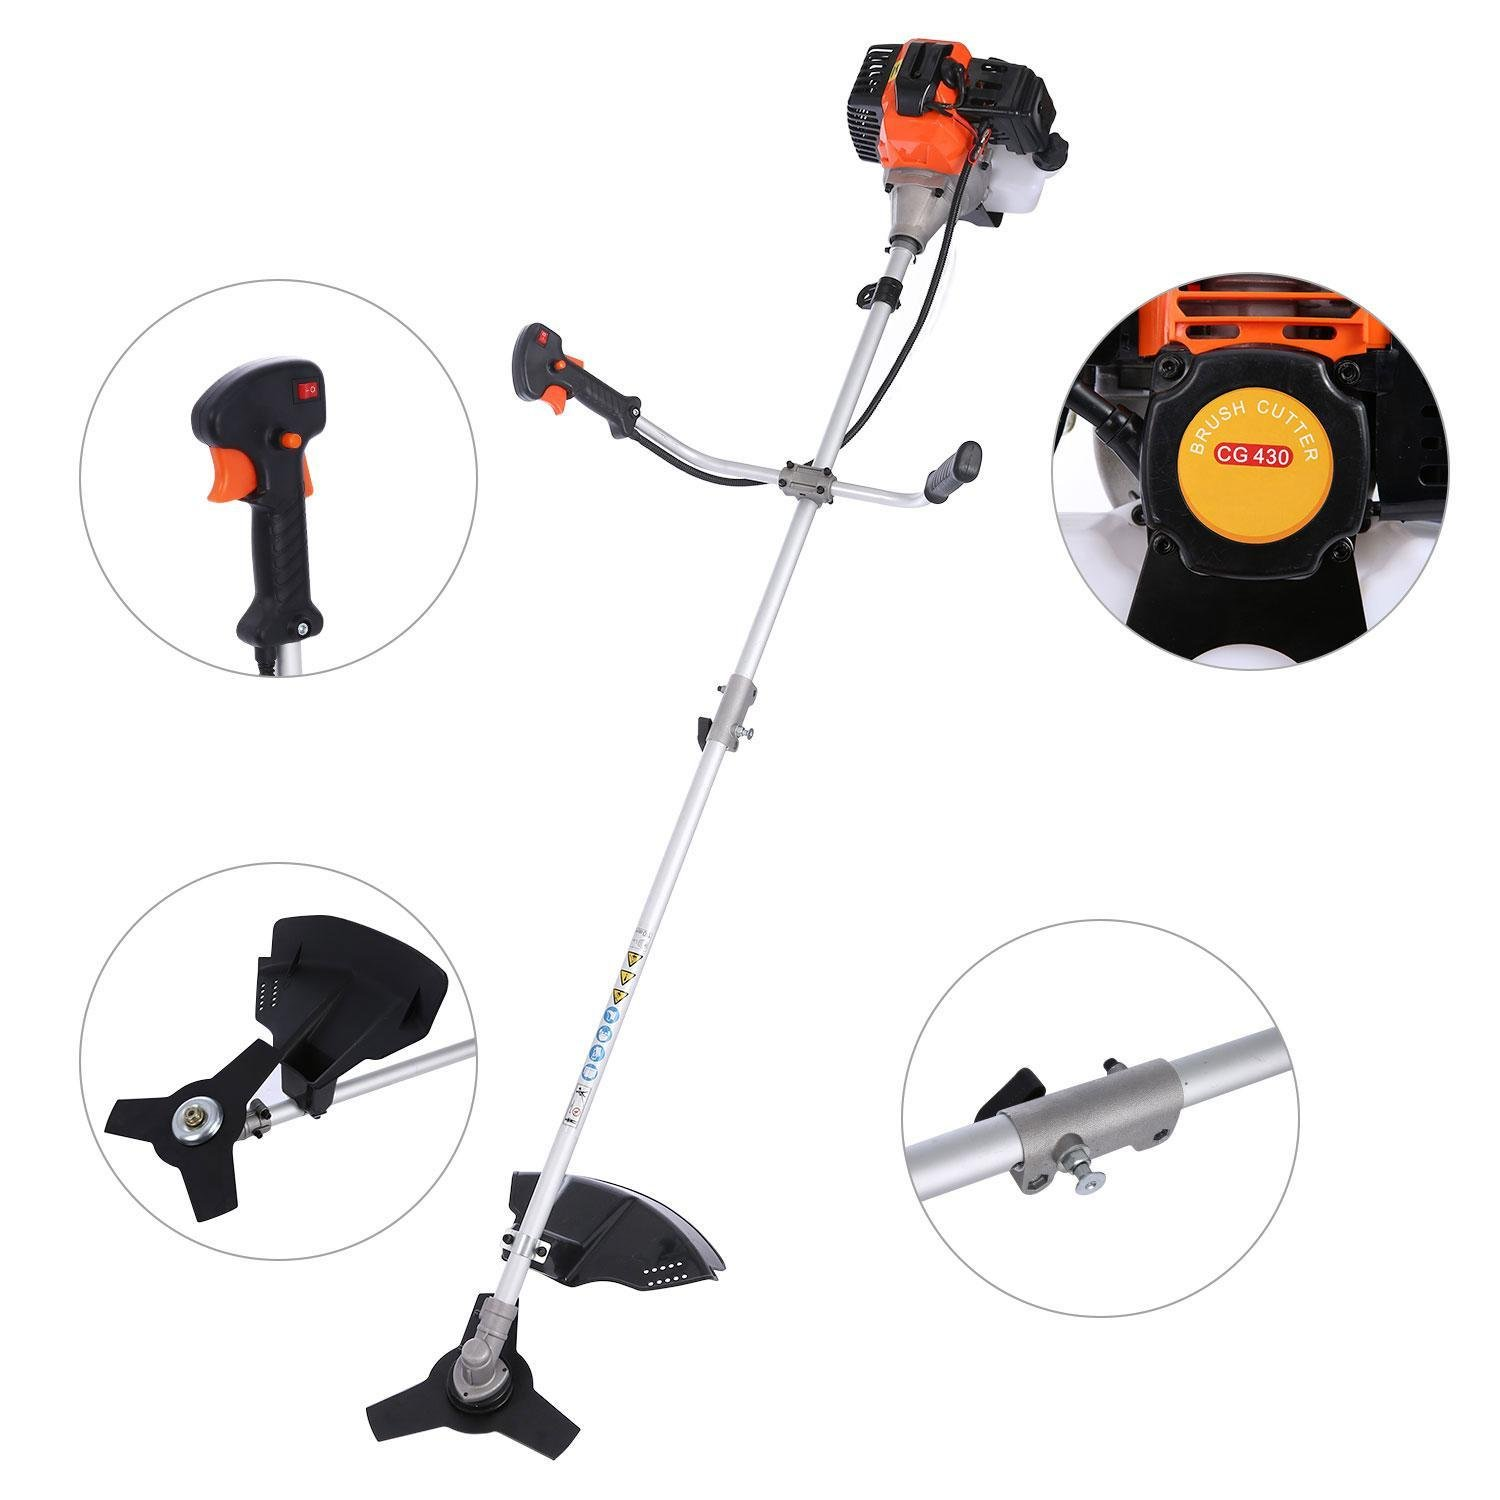 Lantusi 43cc 2-Cycle Gas Powered Straight Shaft Trimmer Brush Cutter Combo with Adjustable J-Handle for Grass Trimming by Lantusi (Image #1)